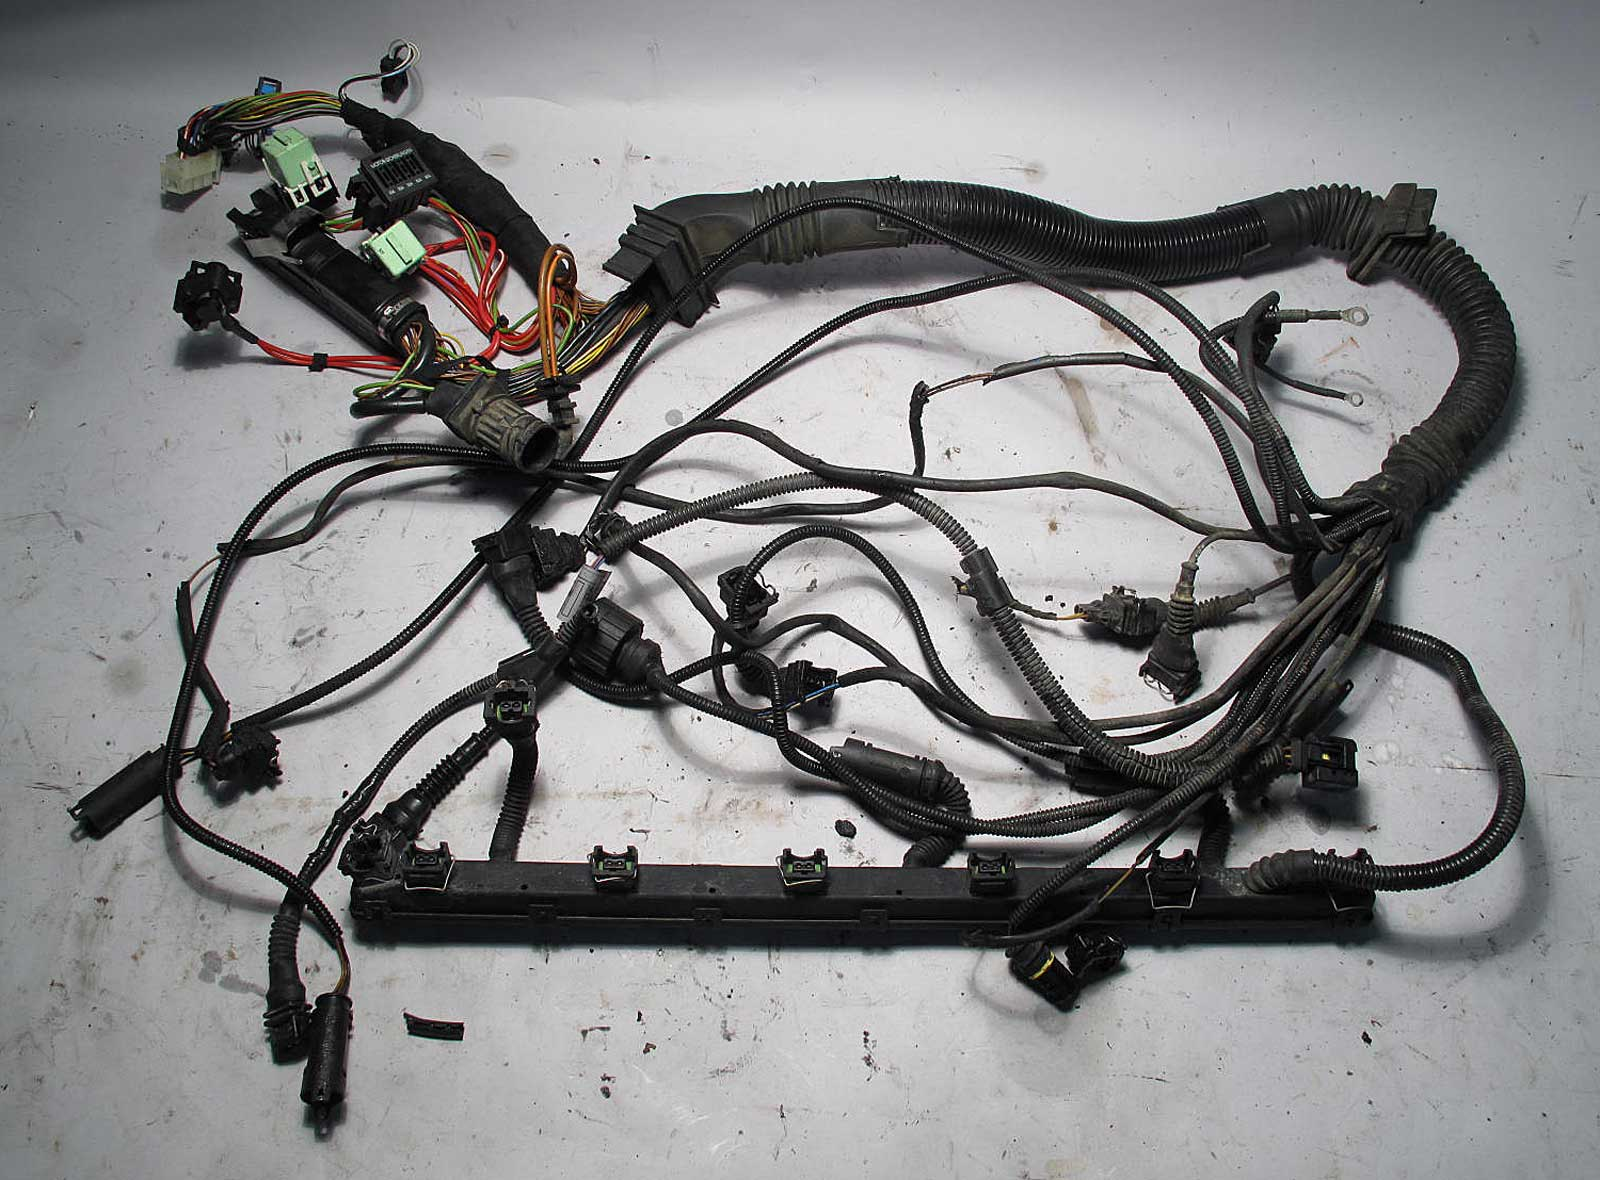 inv_004585 bmw e39 1998 528i 5 spd manual engine wiring harness complete m52 BMW E36 M3 for Sale at creativeand.co